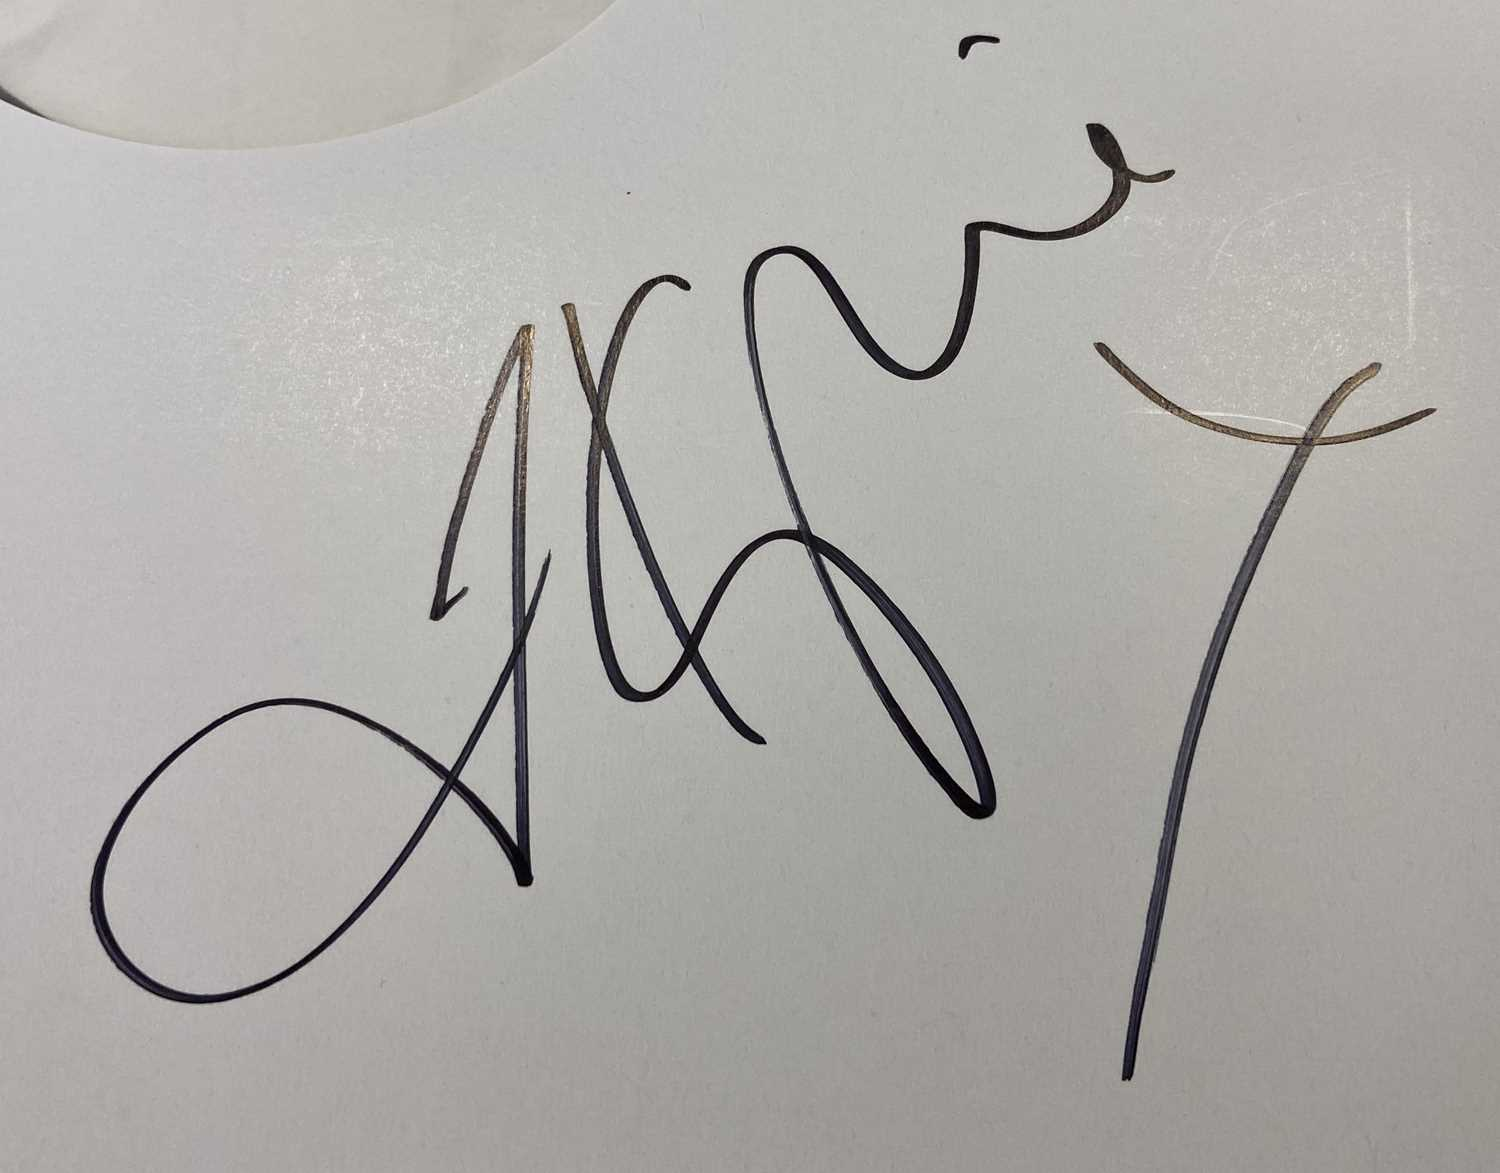 KYLIE MINOGUE - DISCO LP (SIGNED WHITE LABEL TEST PRESSING) - Image 2 of 2